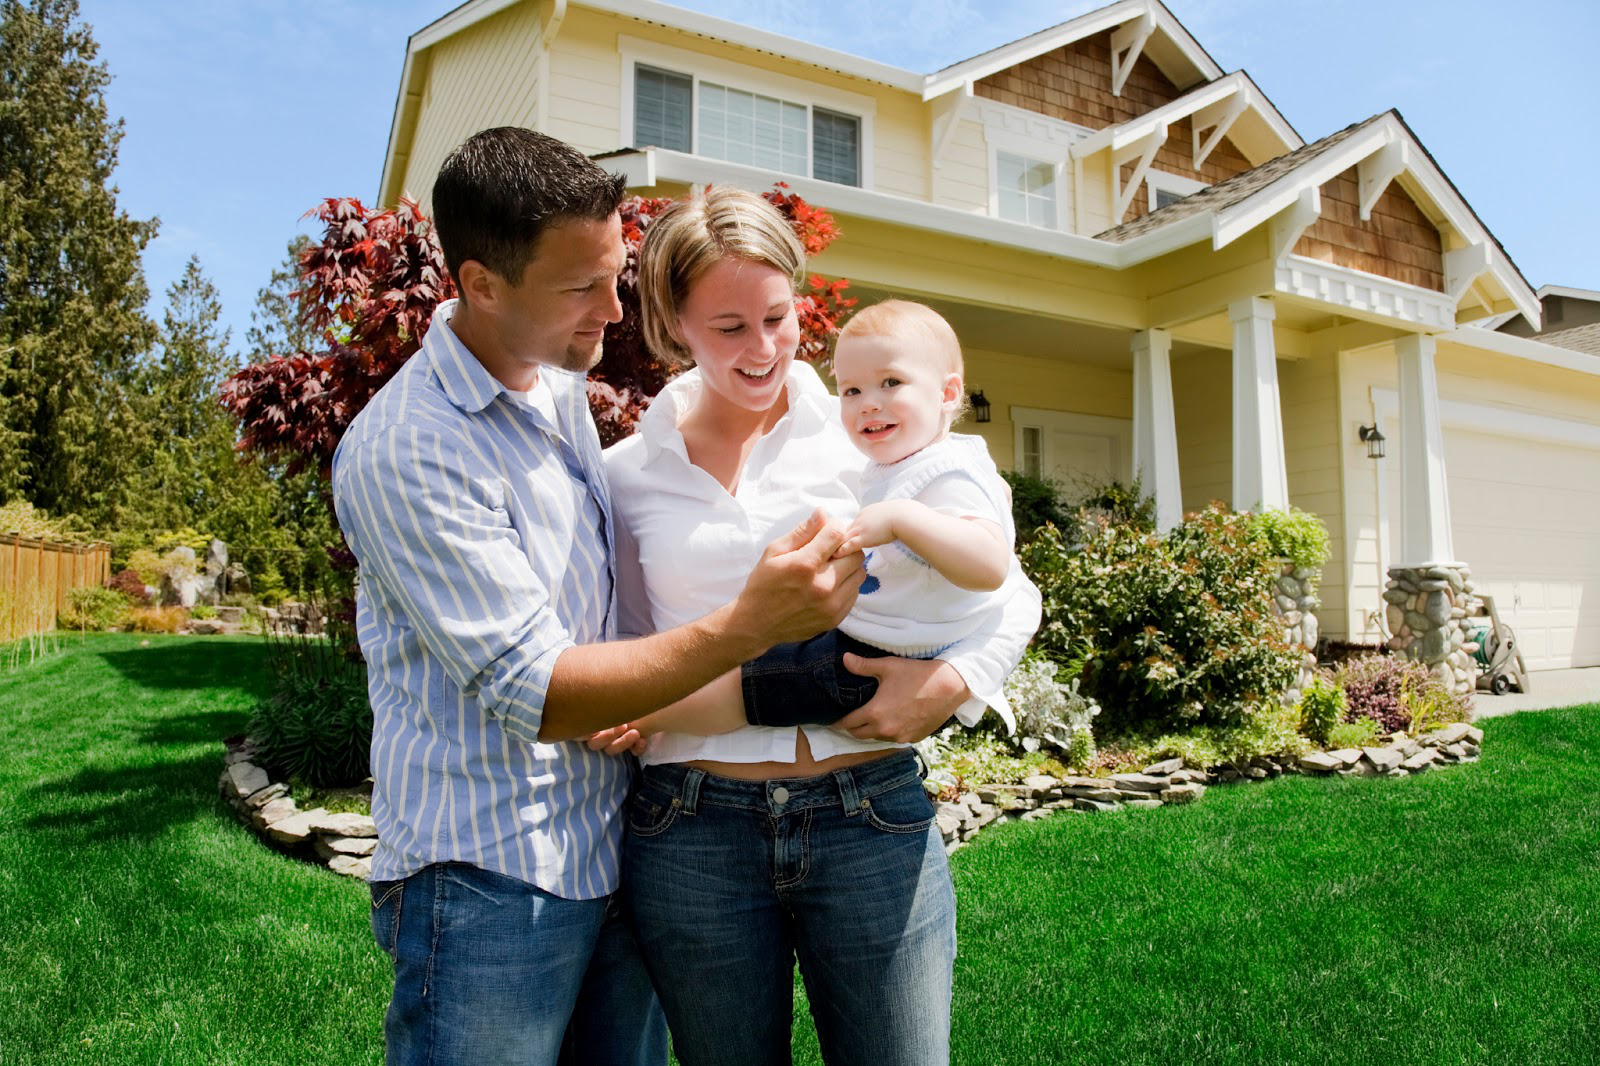 4 Factors to consider when you are finding a home for your family